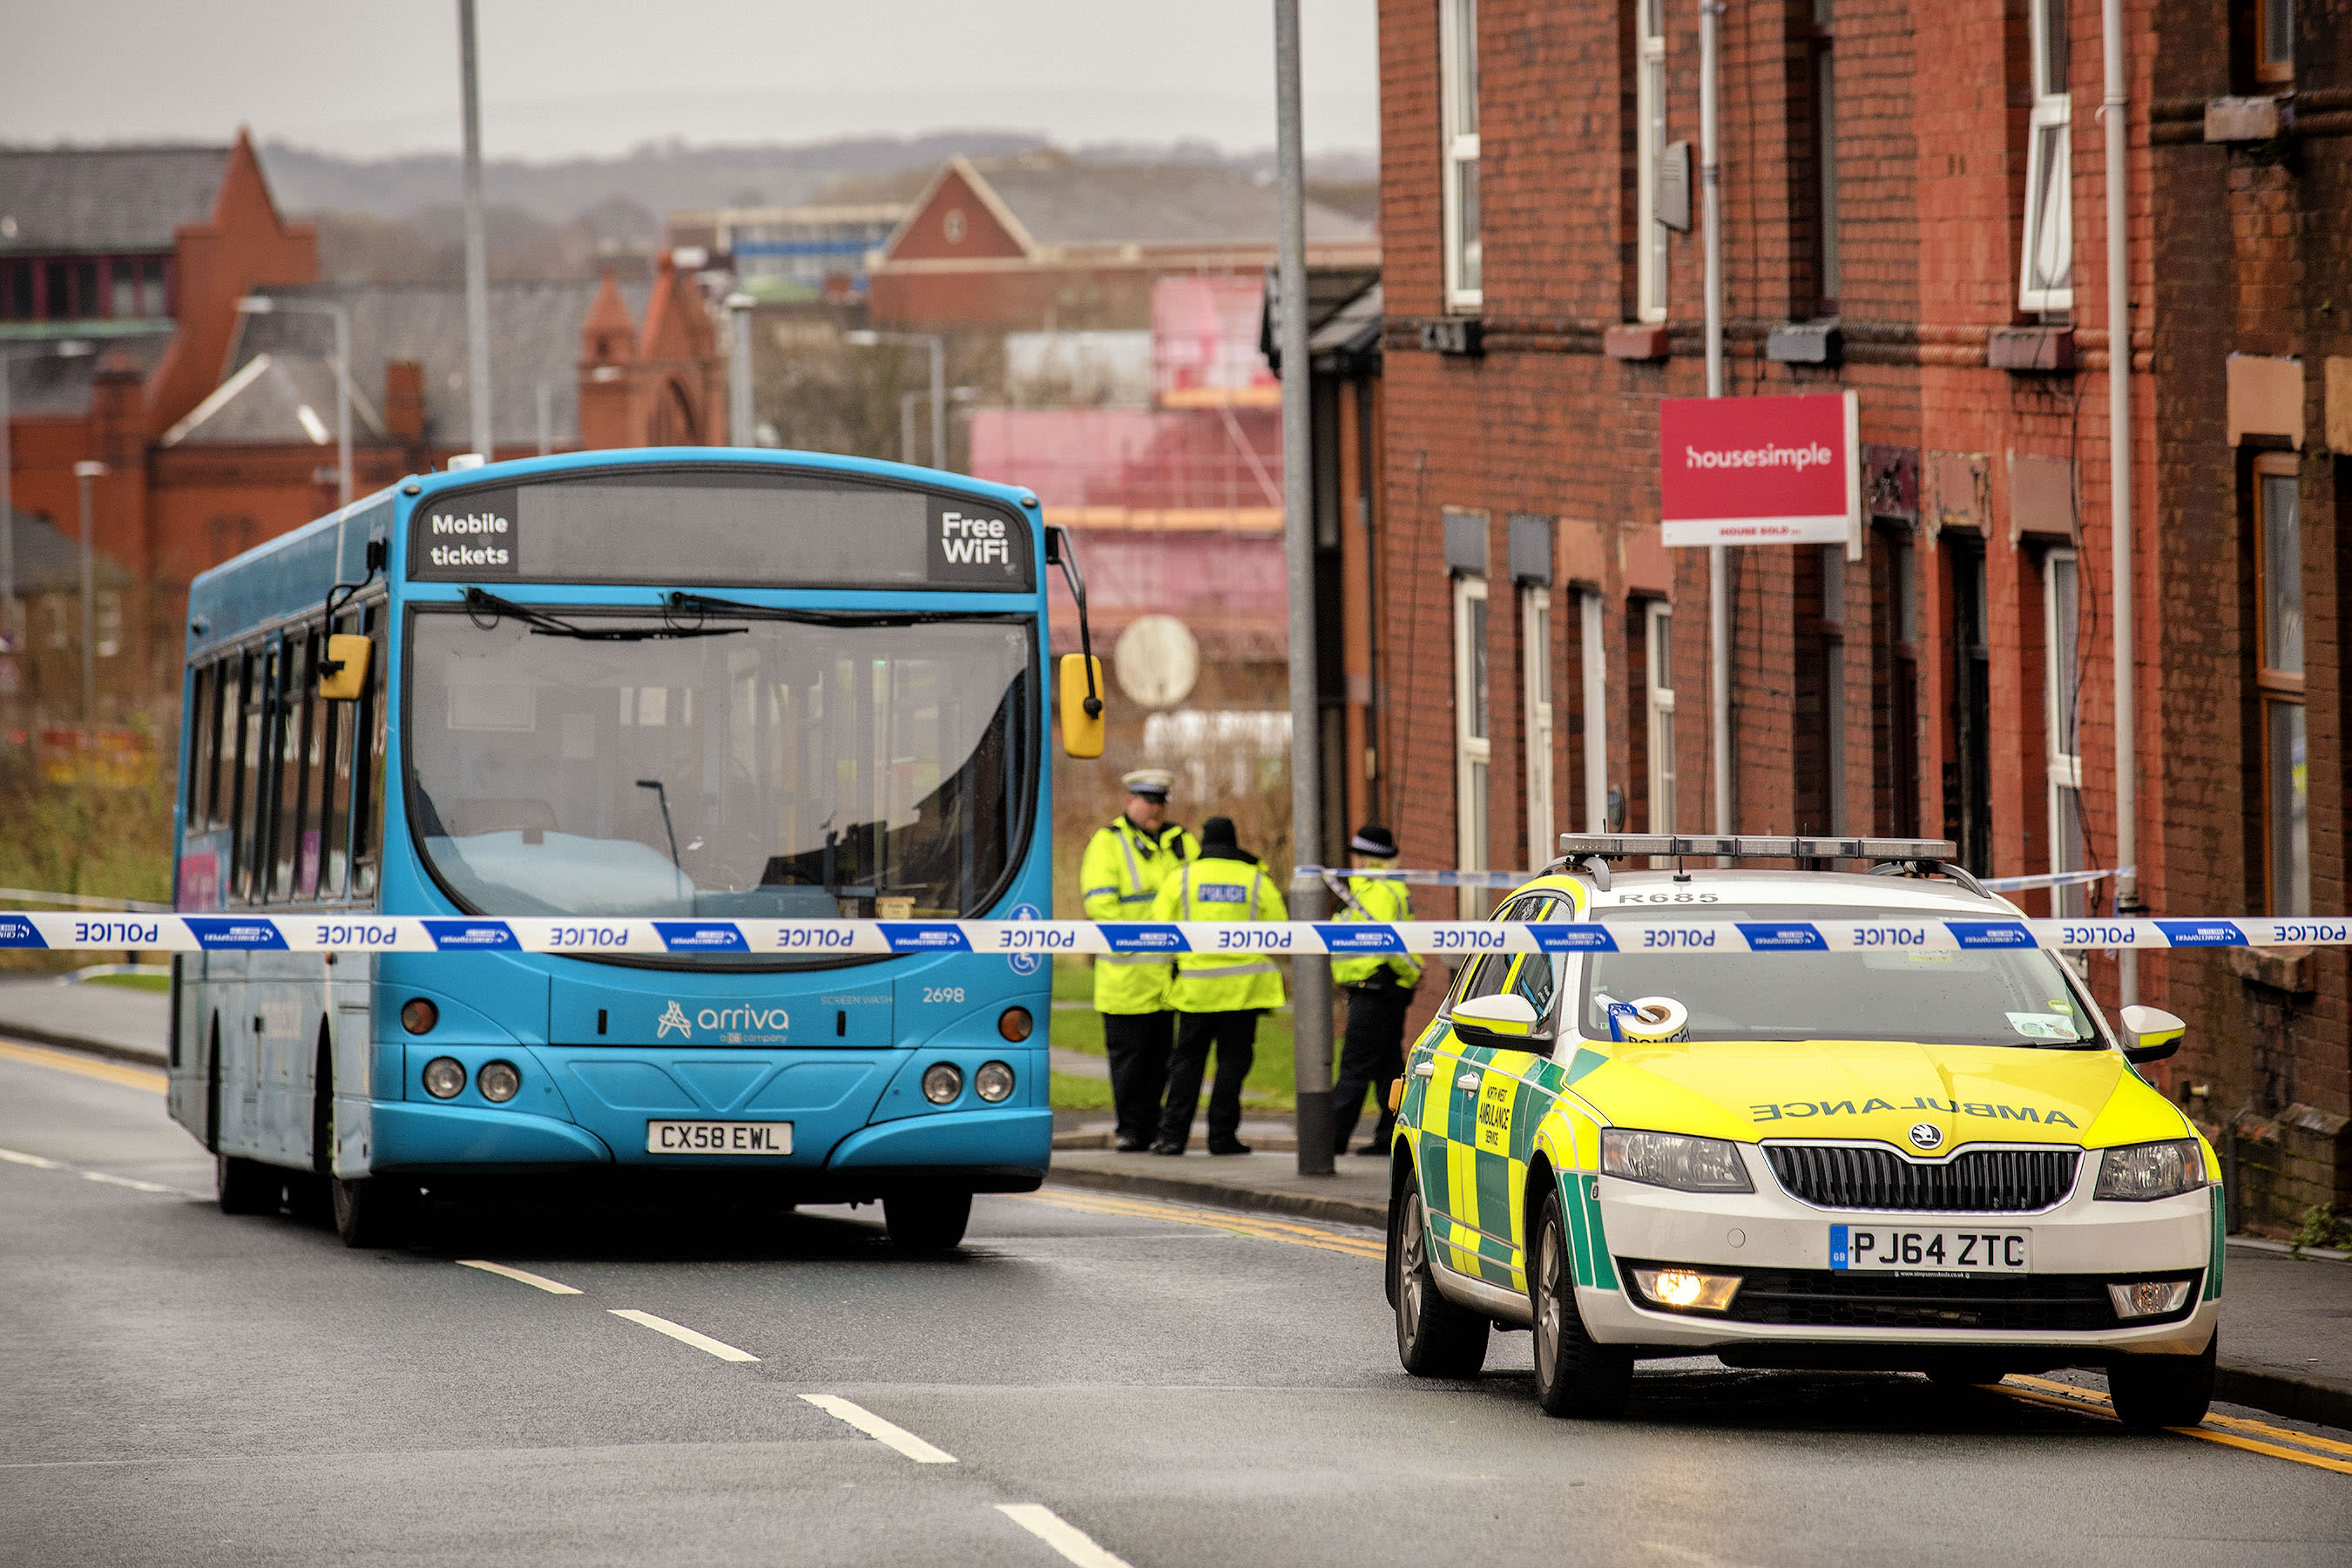 Woman dies after bus she is travelling on 'slams brakes' to avoid accident